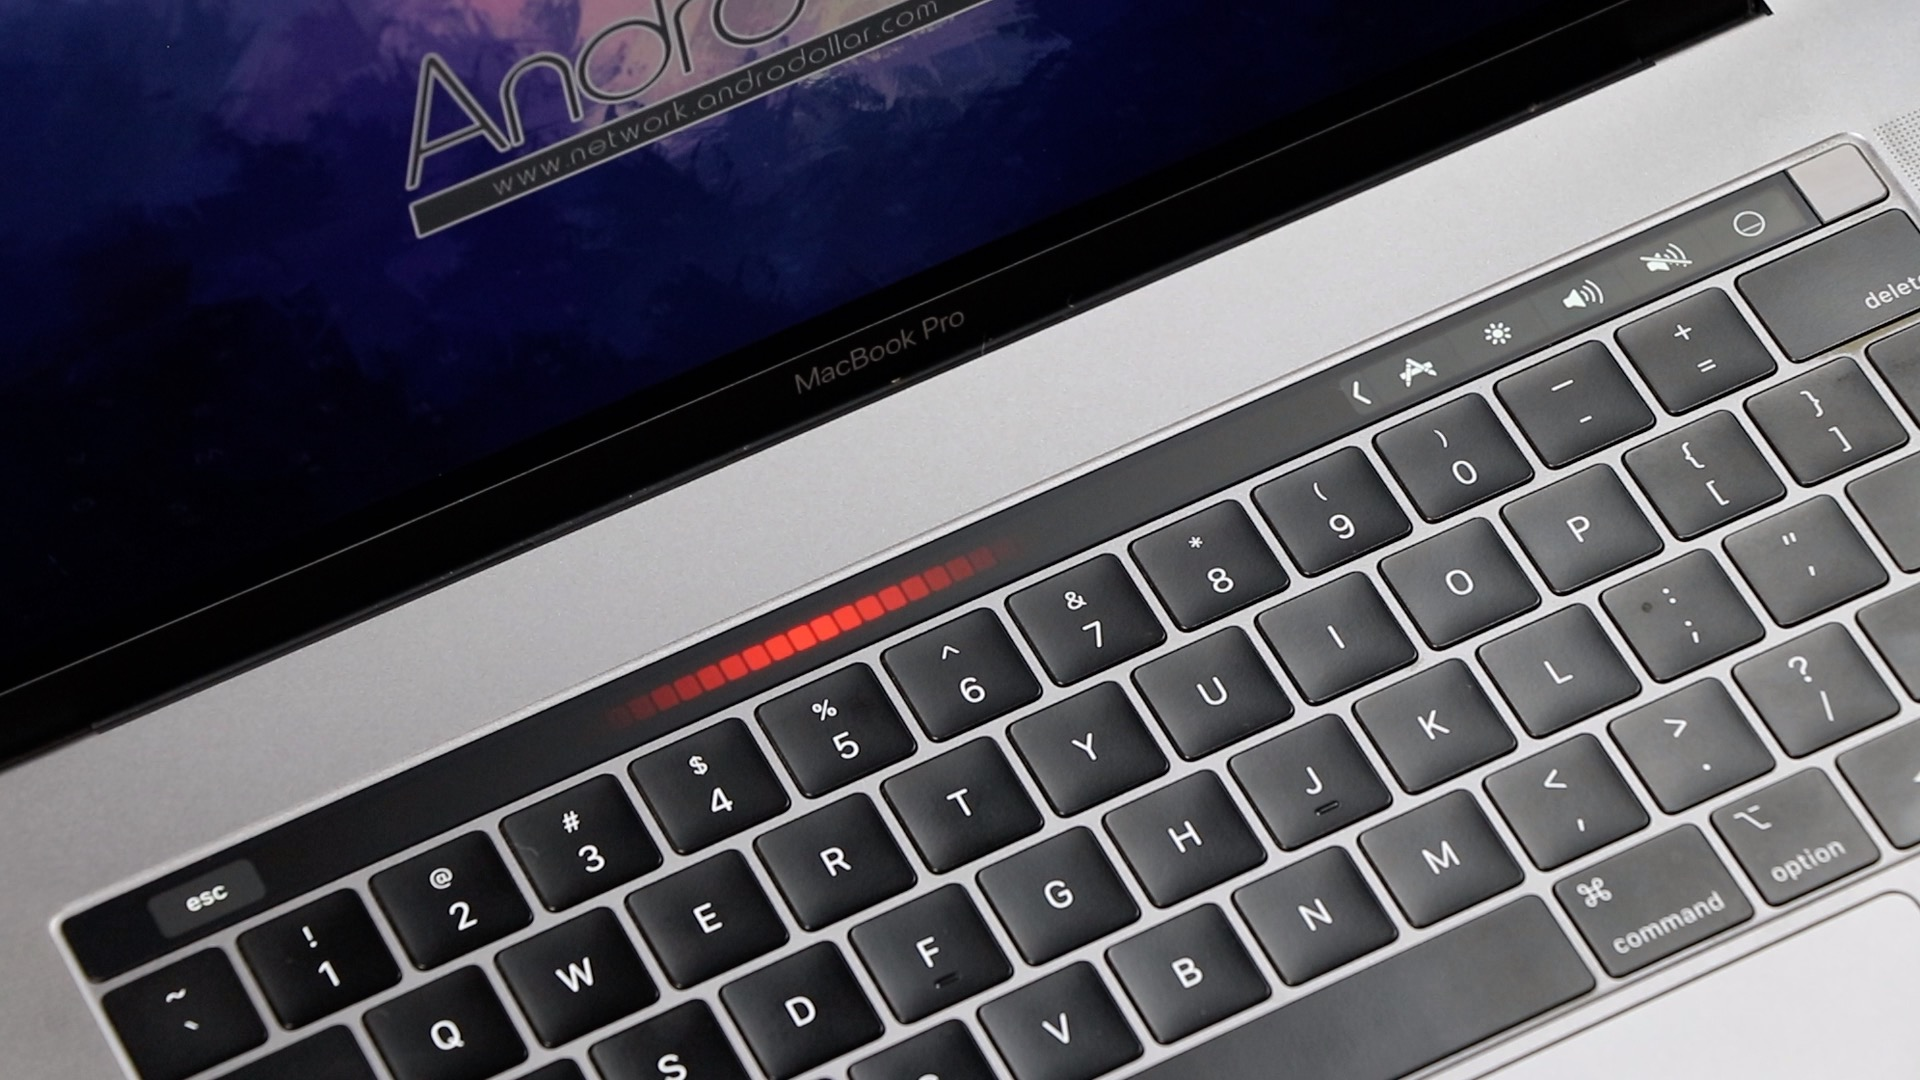 Macbook Touchbar Apps - BEST and most UNIQUE Touchbar apps you won't find in the Mac App Store!